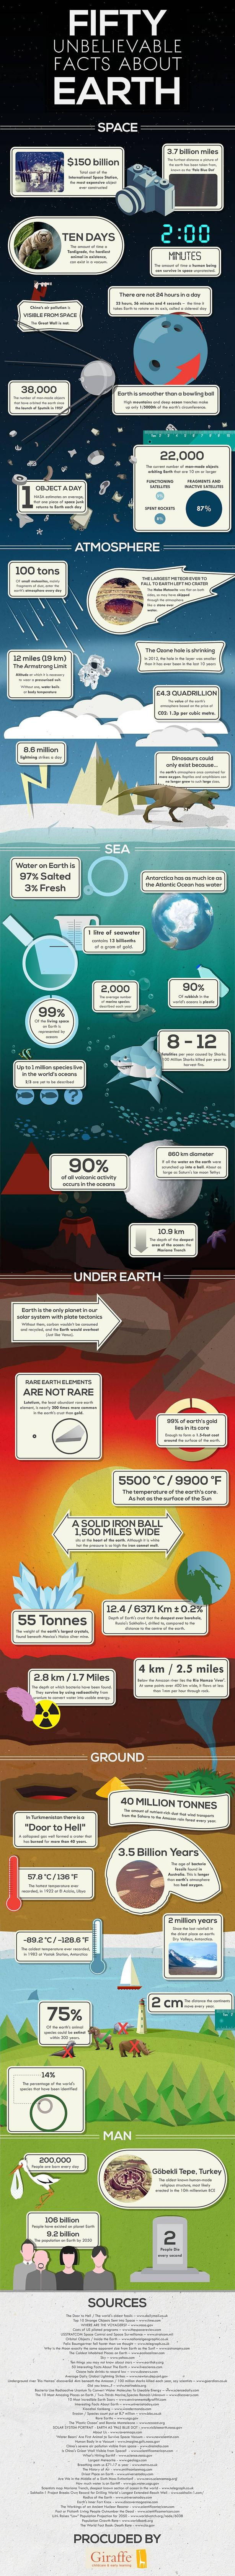 04Earth Facts